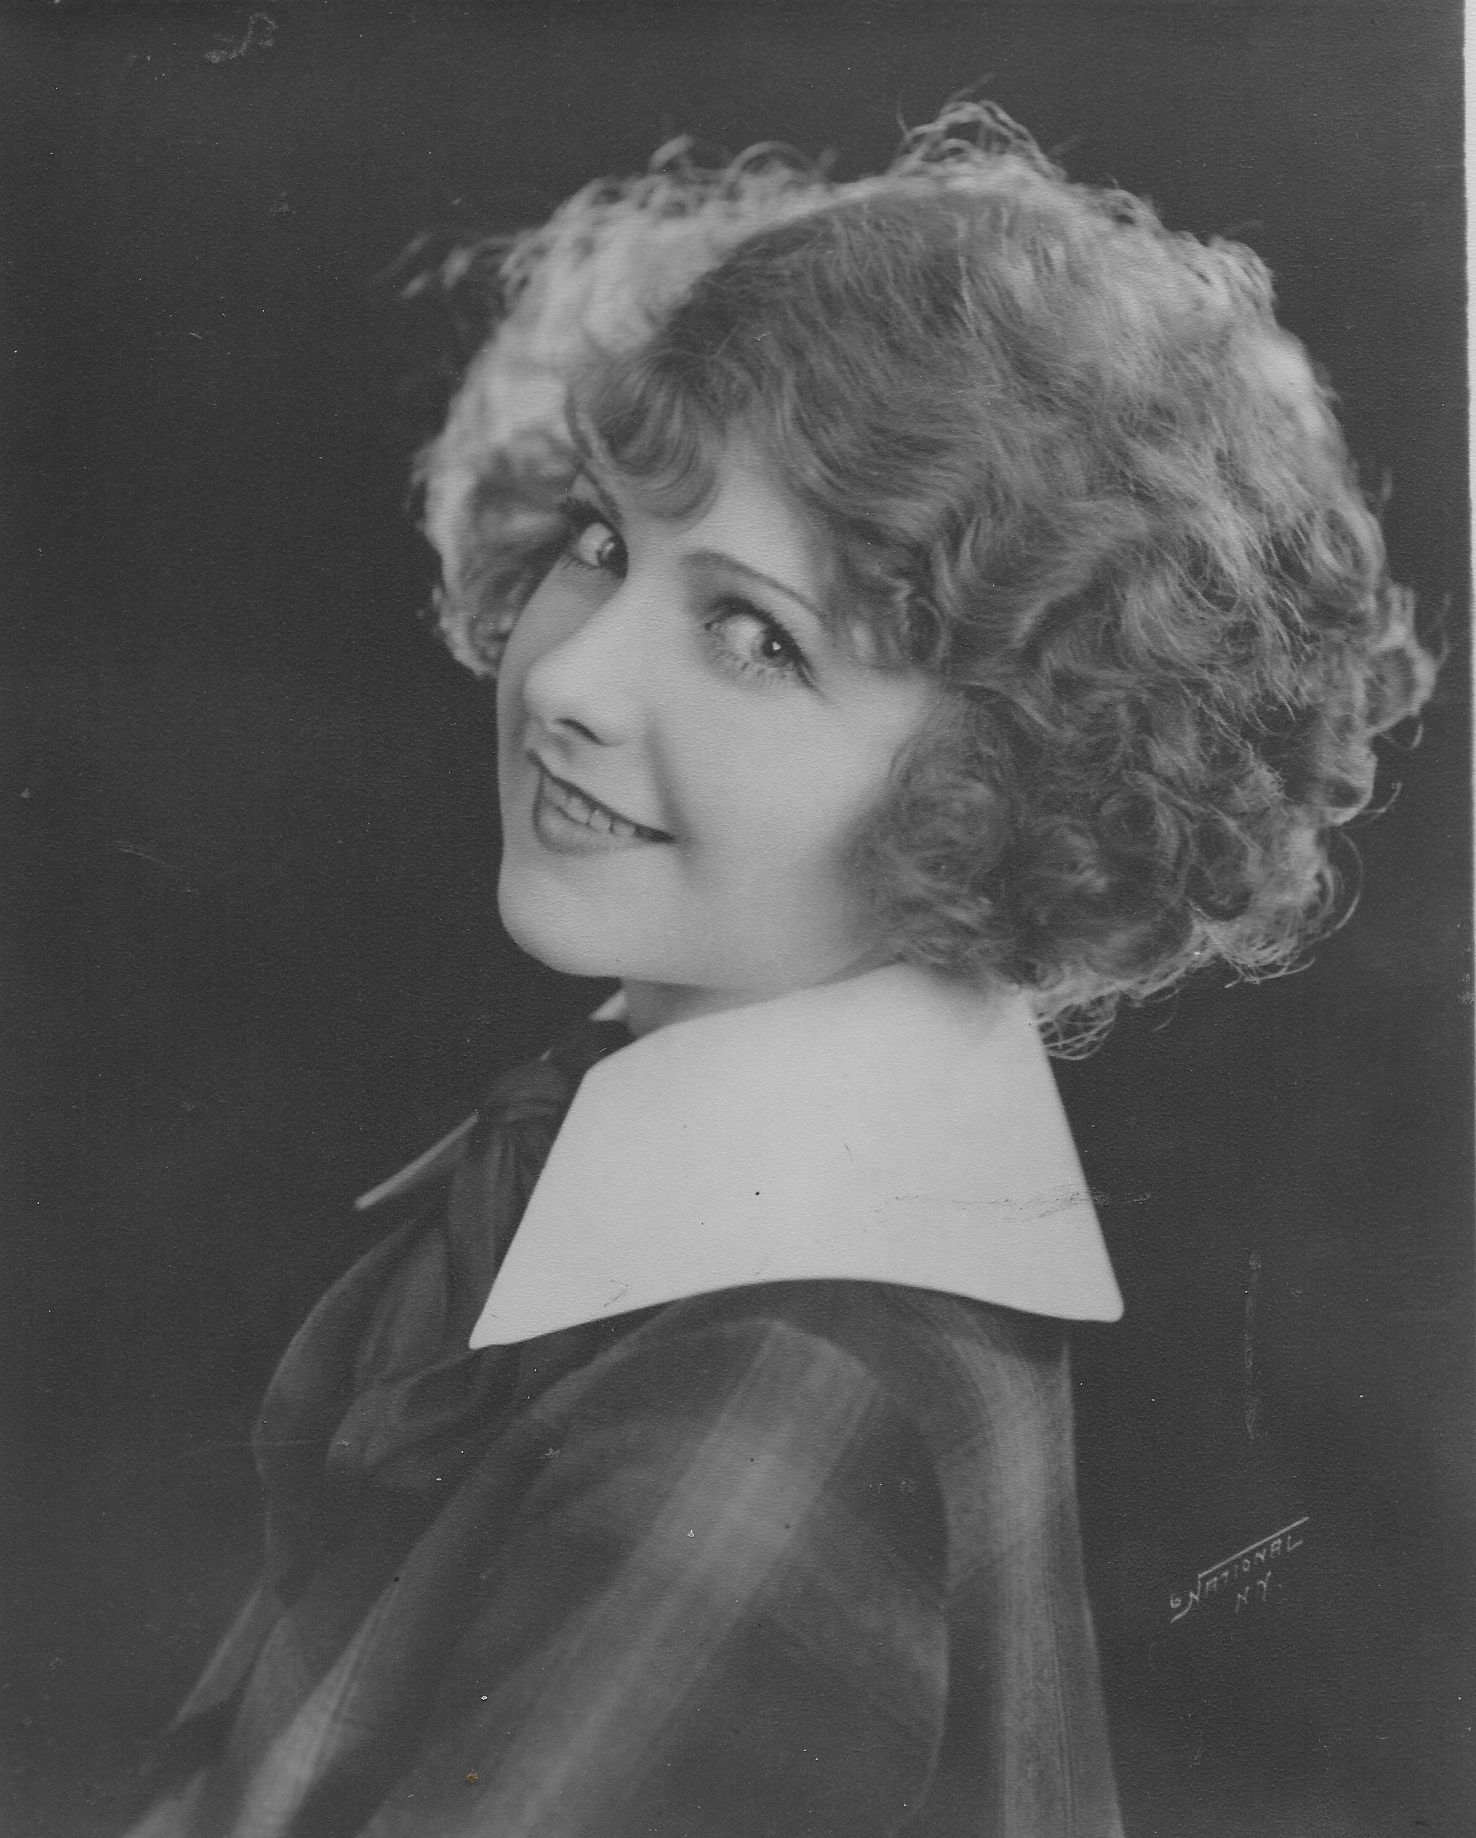 Communication on this topic: Teal Sherer, vivian-reed-silent-film-actress/